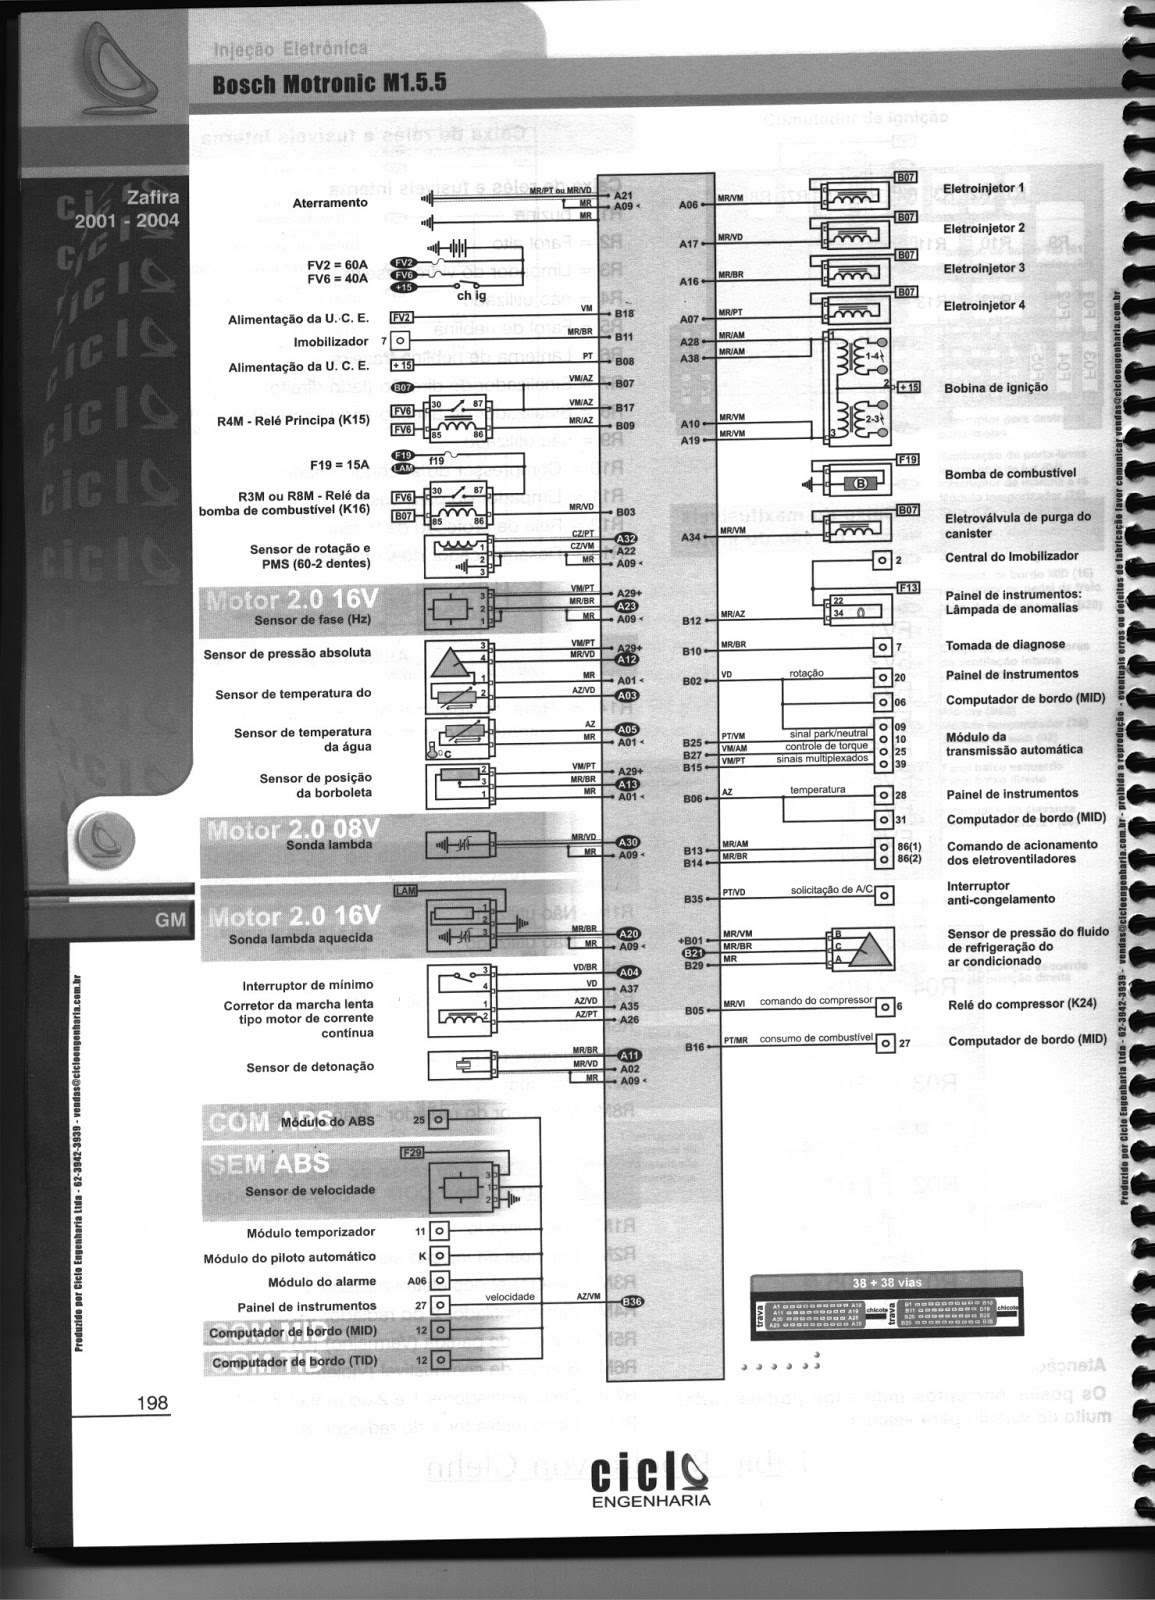 2000 Mitsubishi Eclipse Gt Radio Wiring Diagram 91 Gmc Tail Lights Mazda B2200 Fuse Box Free Engine Image For